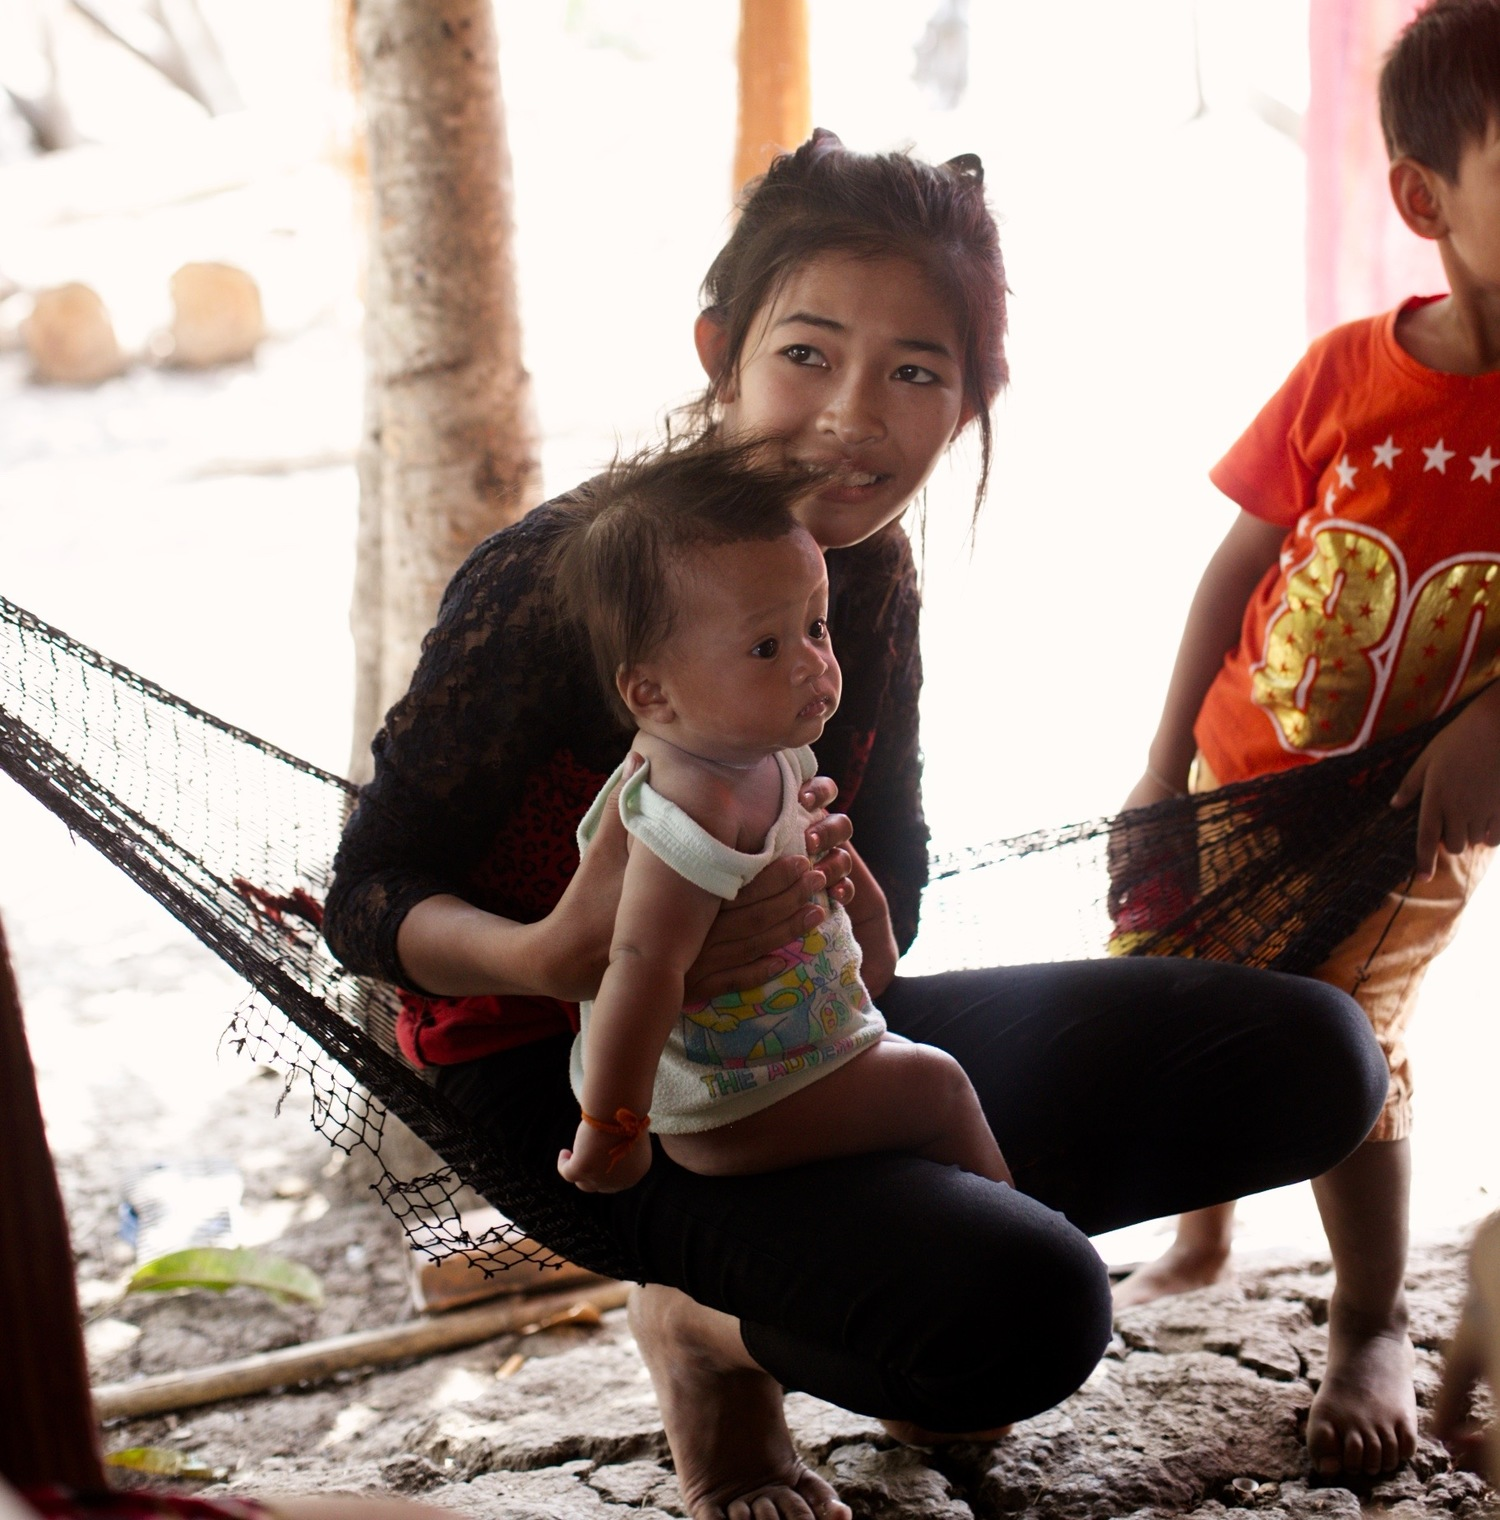 Srey Pich and her new baby in their hut.